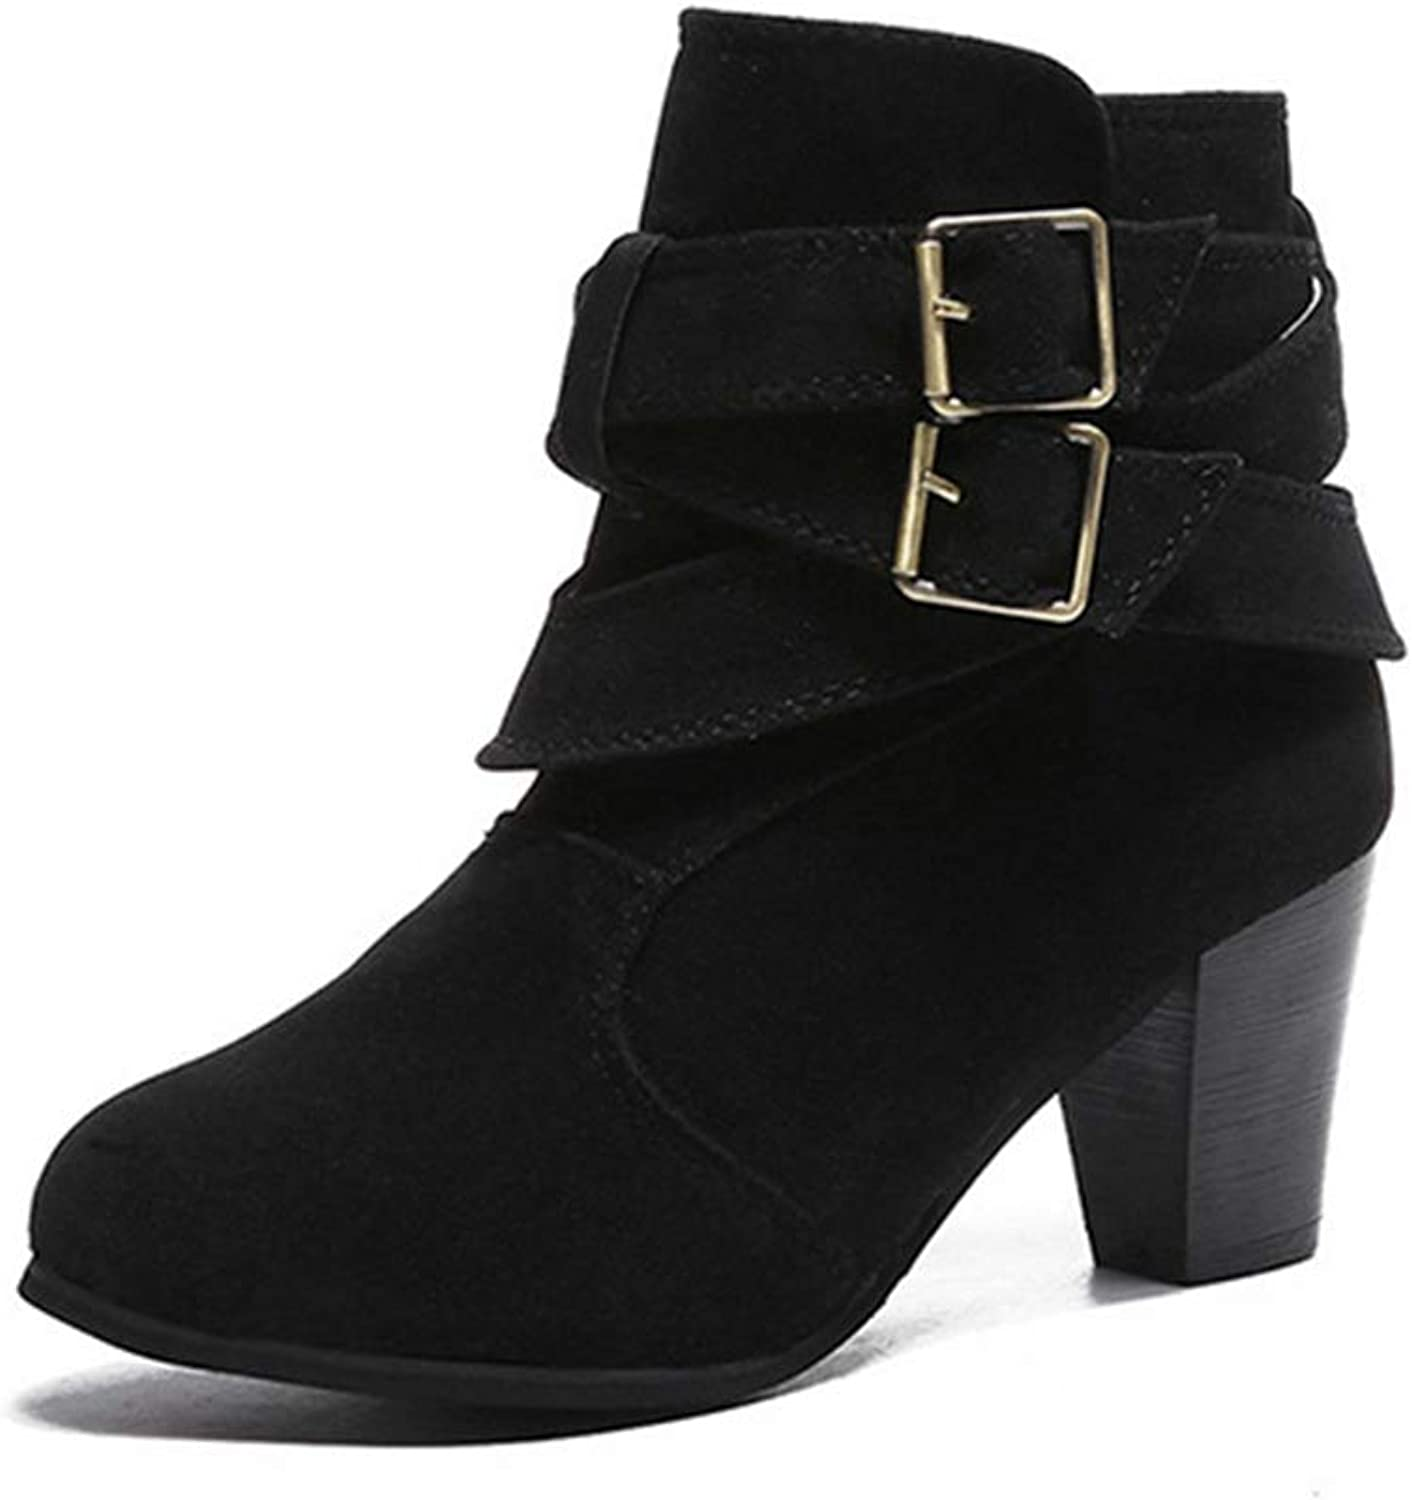 York Zhu Women Casual Boots,Winter Cut Out Buckle Strap Low Heel Ankle Booties Size 8